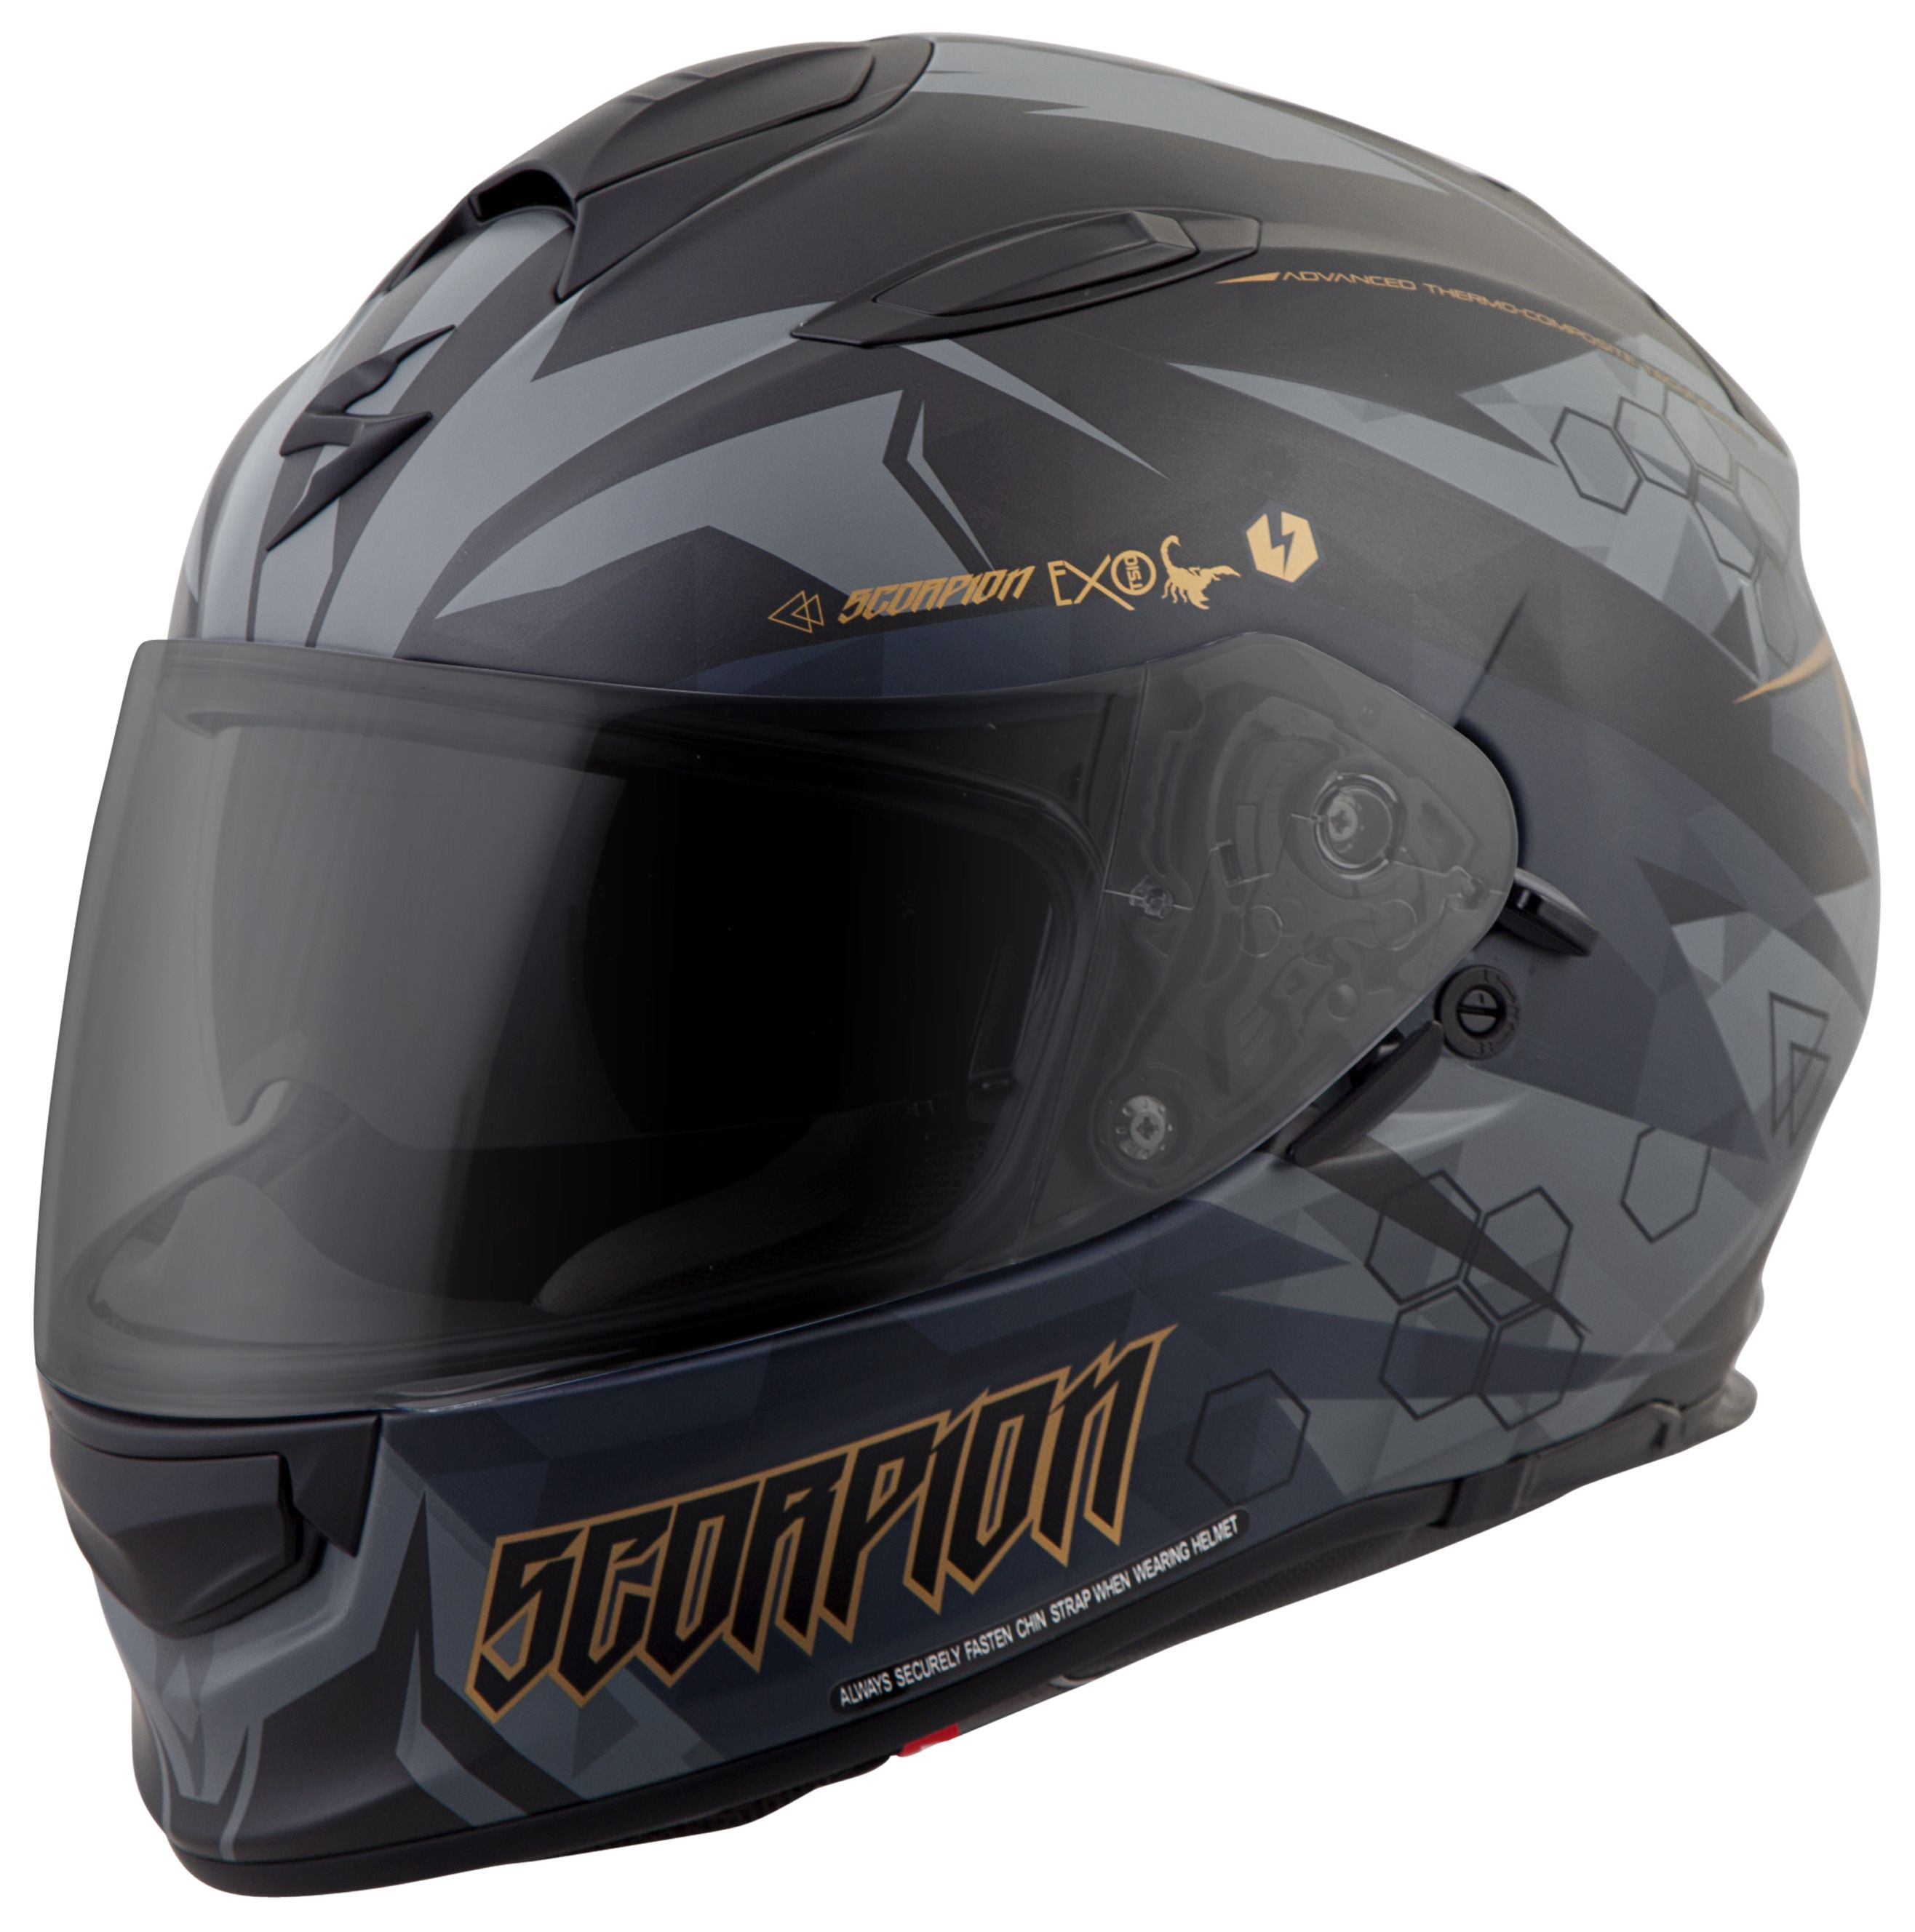 motomundi cascos integrales scorpion exo t510 cipher helmet. Black Bedroom Furniture Sets. Home Design Ideas